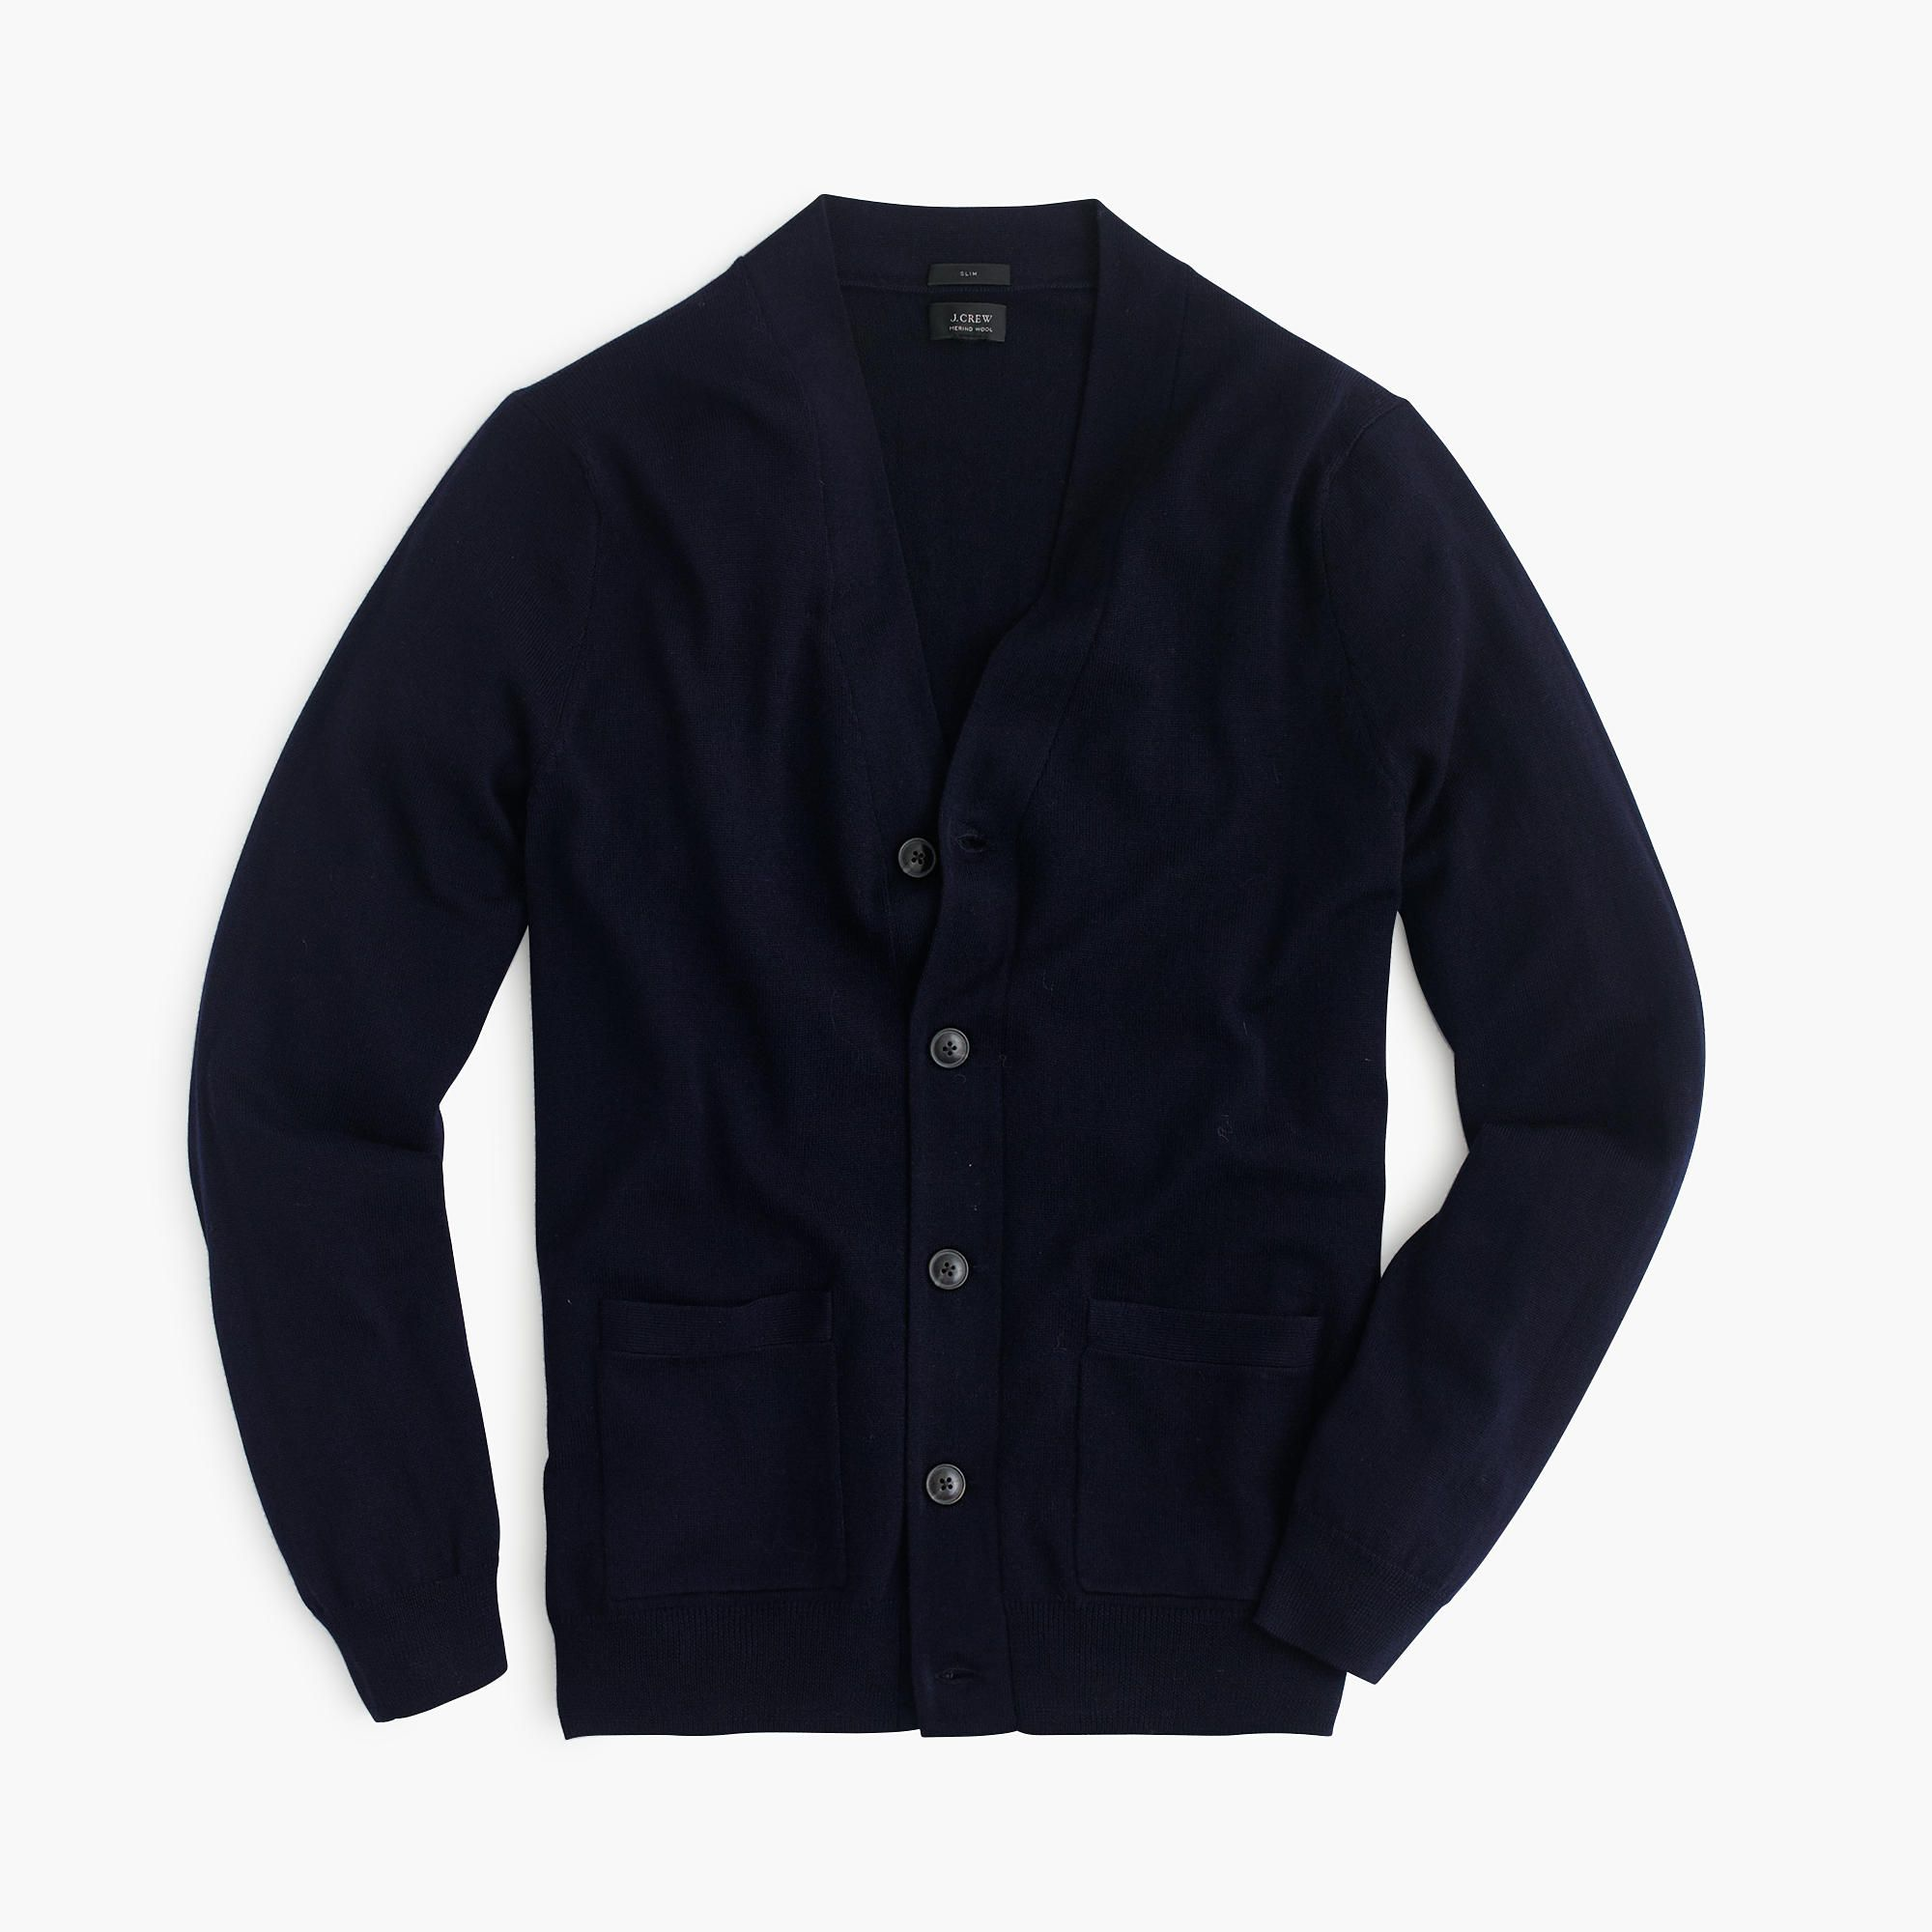 Shop the Slim Merino Wool Cardigan Sweater at JCrew.com and see ...